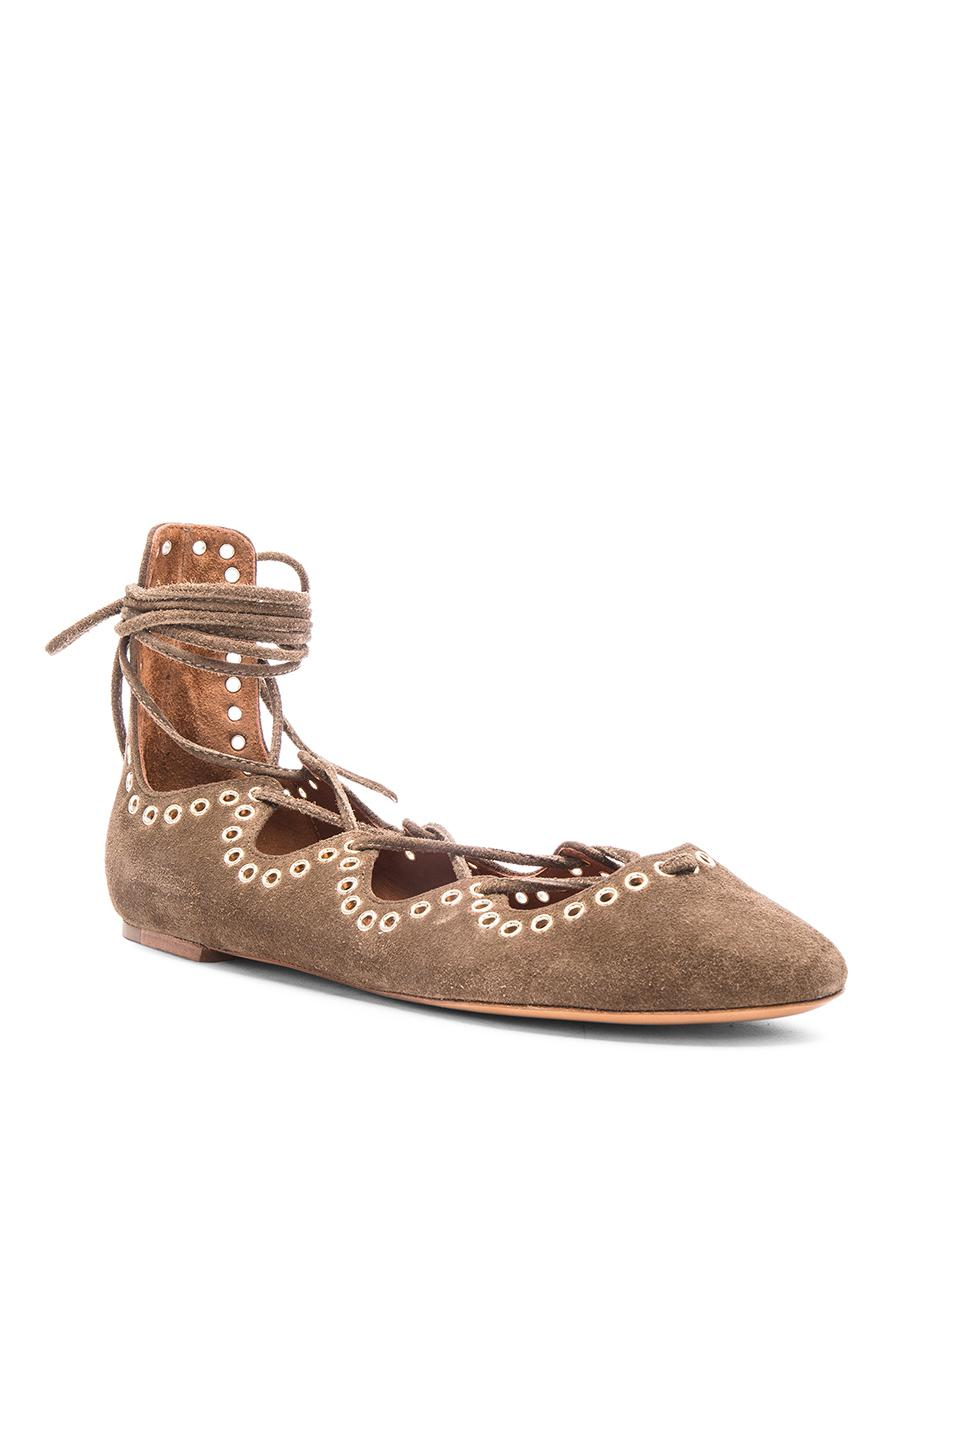 Buy Cheap Amazing Price Clearance Online Isabel Marant Leo Eyelet Velvet Flats in Peach Buy Cheap Reliable L41HCyxGM8